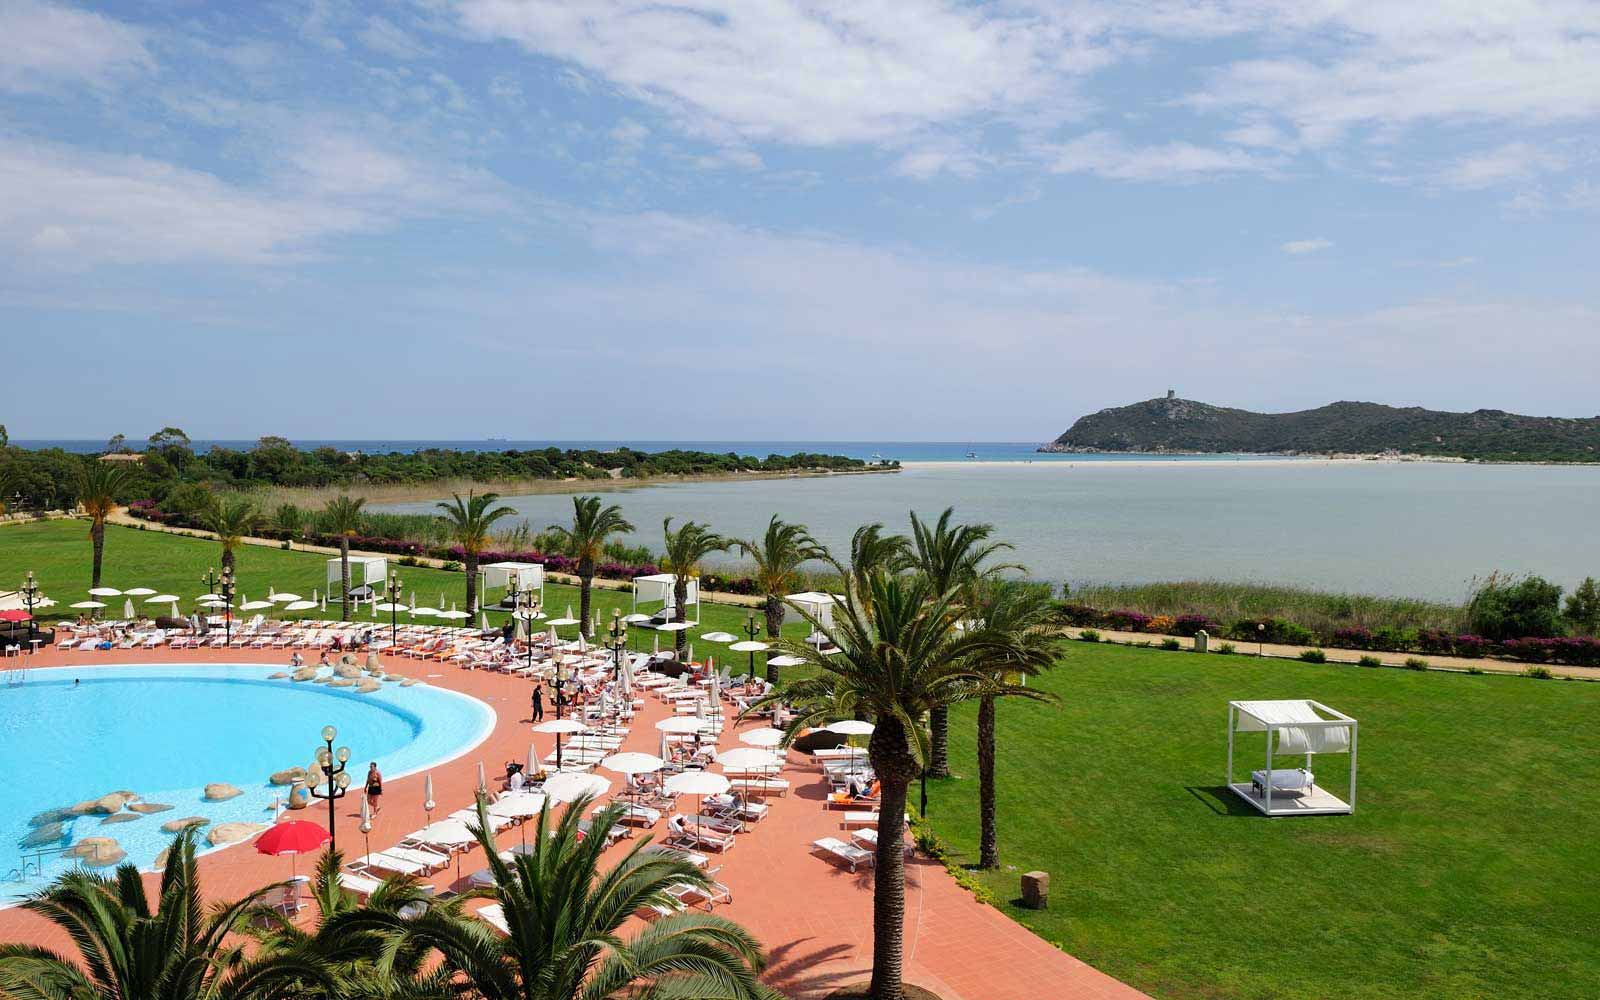 Five star family friendly hotel in Sardinia - Hote Pullman Timi Ama - Sardinia